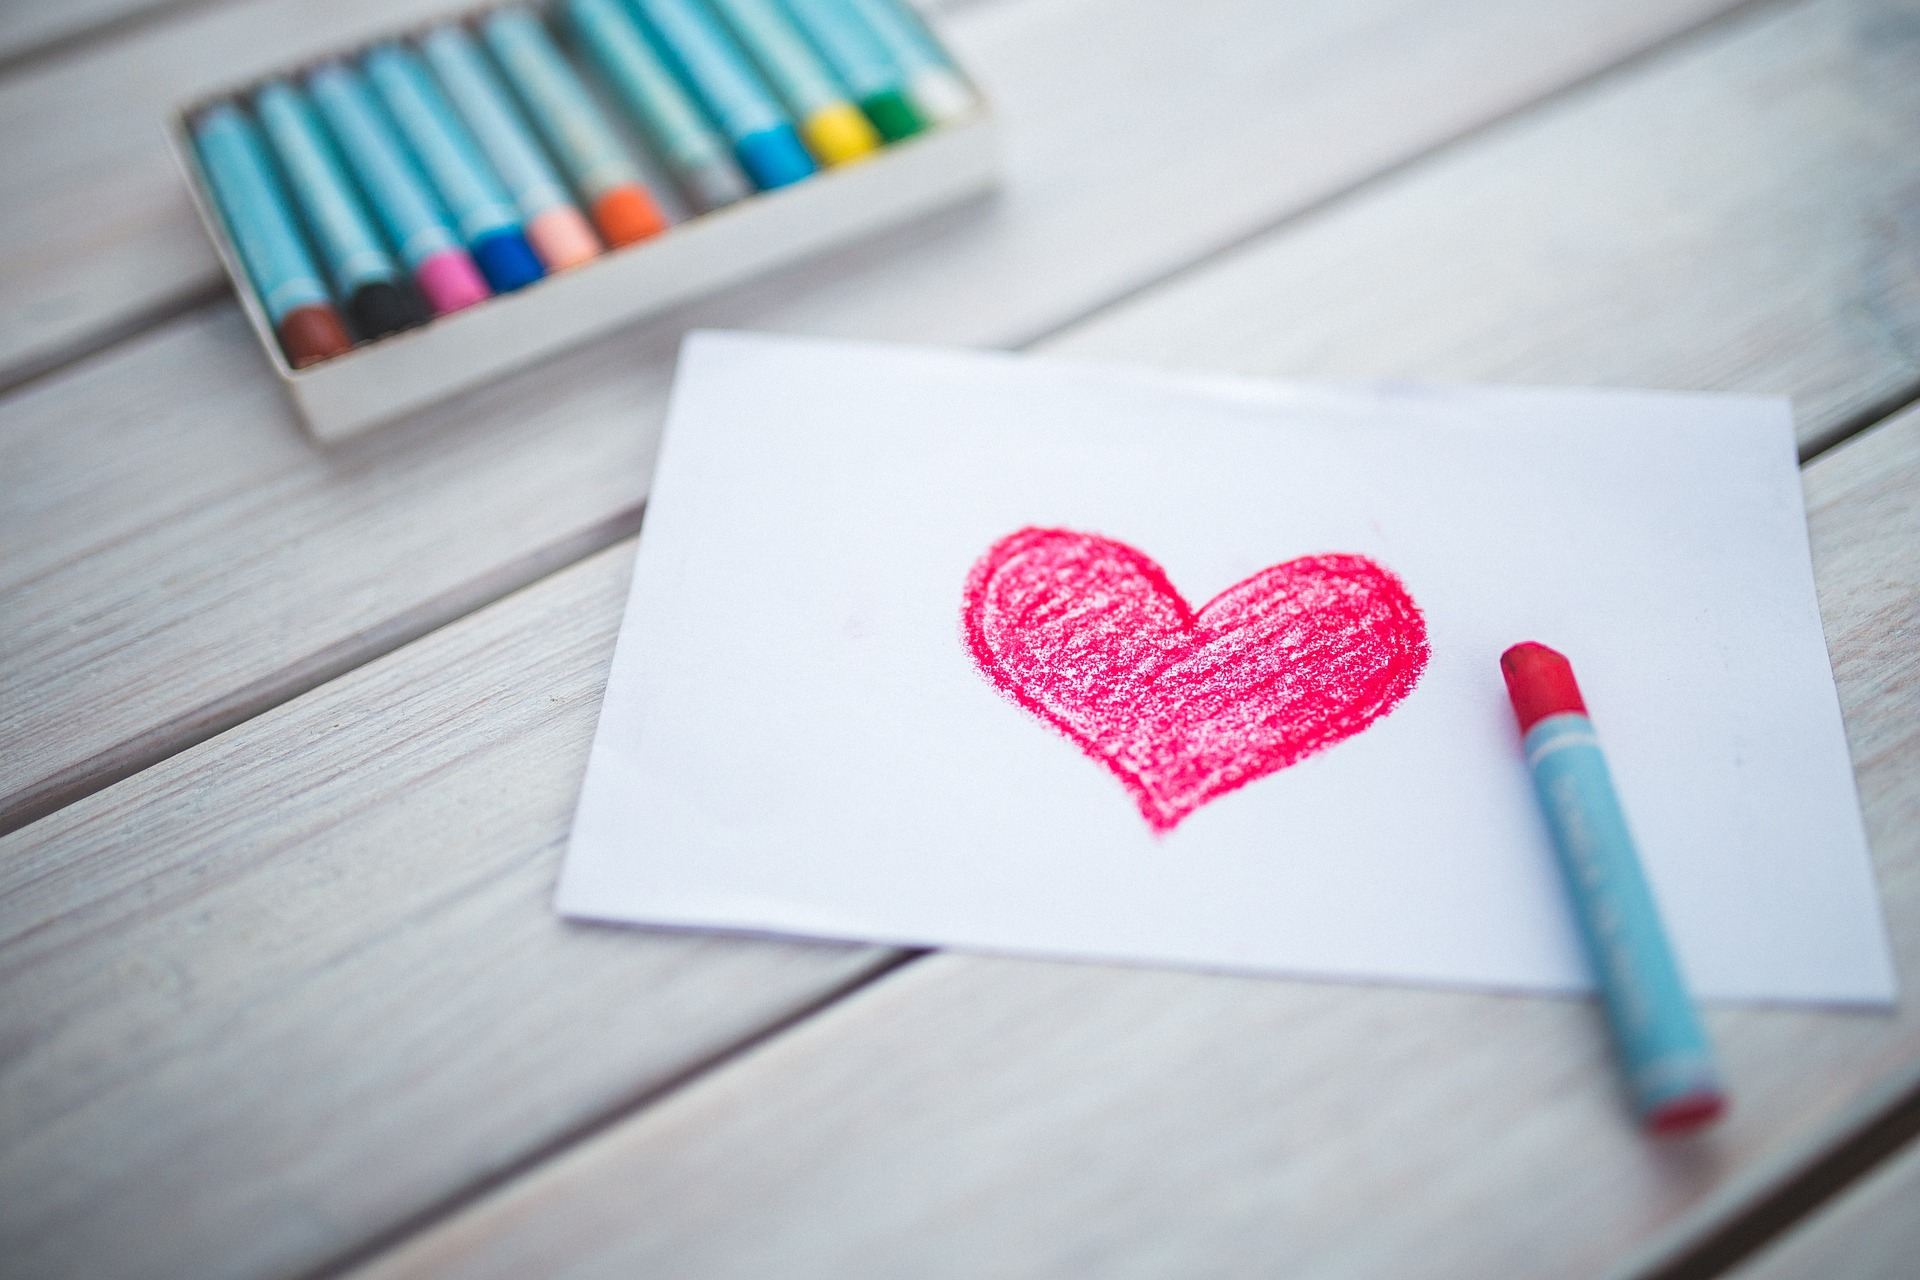 Use recyclable items from your home's bin as a starting point for sweet Valentine's Day crafts. Start with scrap paper and draw or paint your own unique artwork.